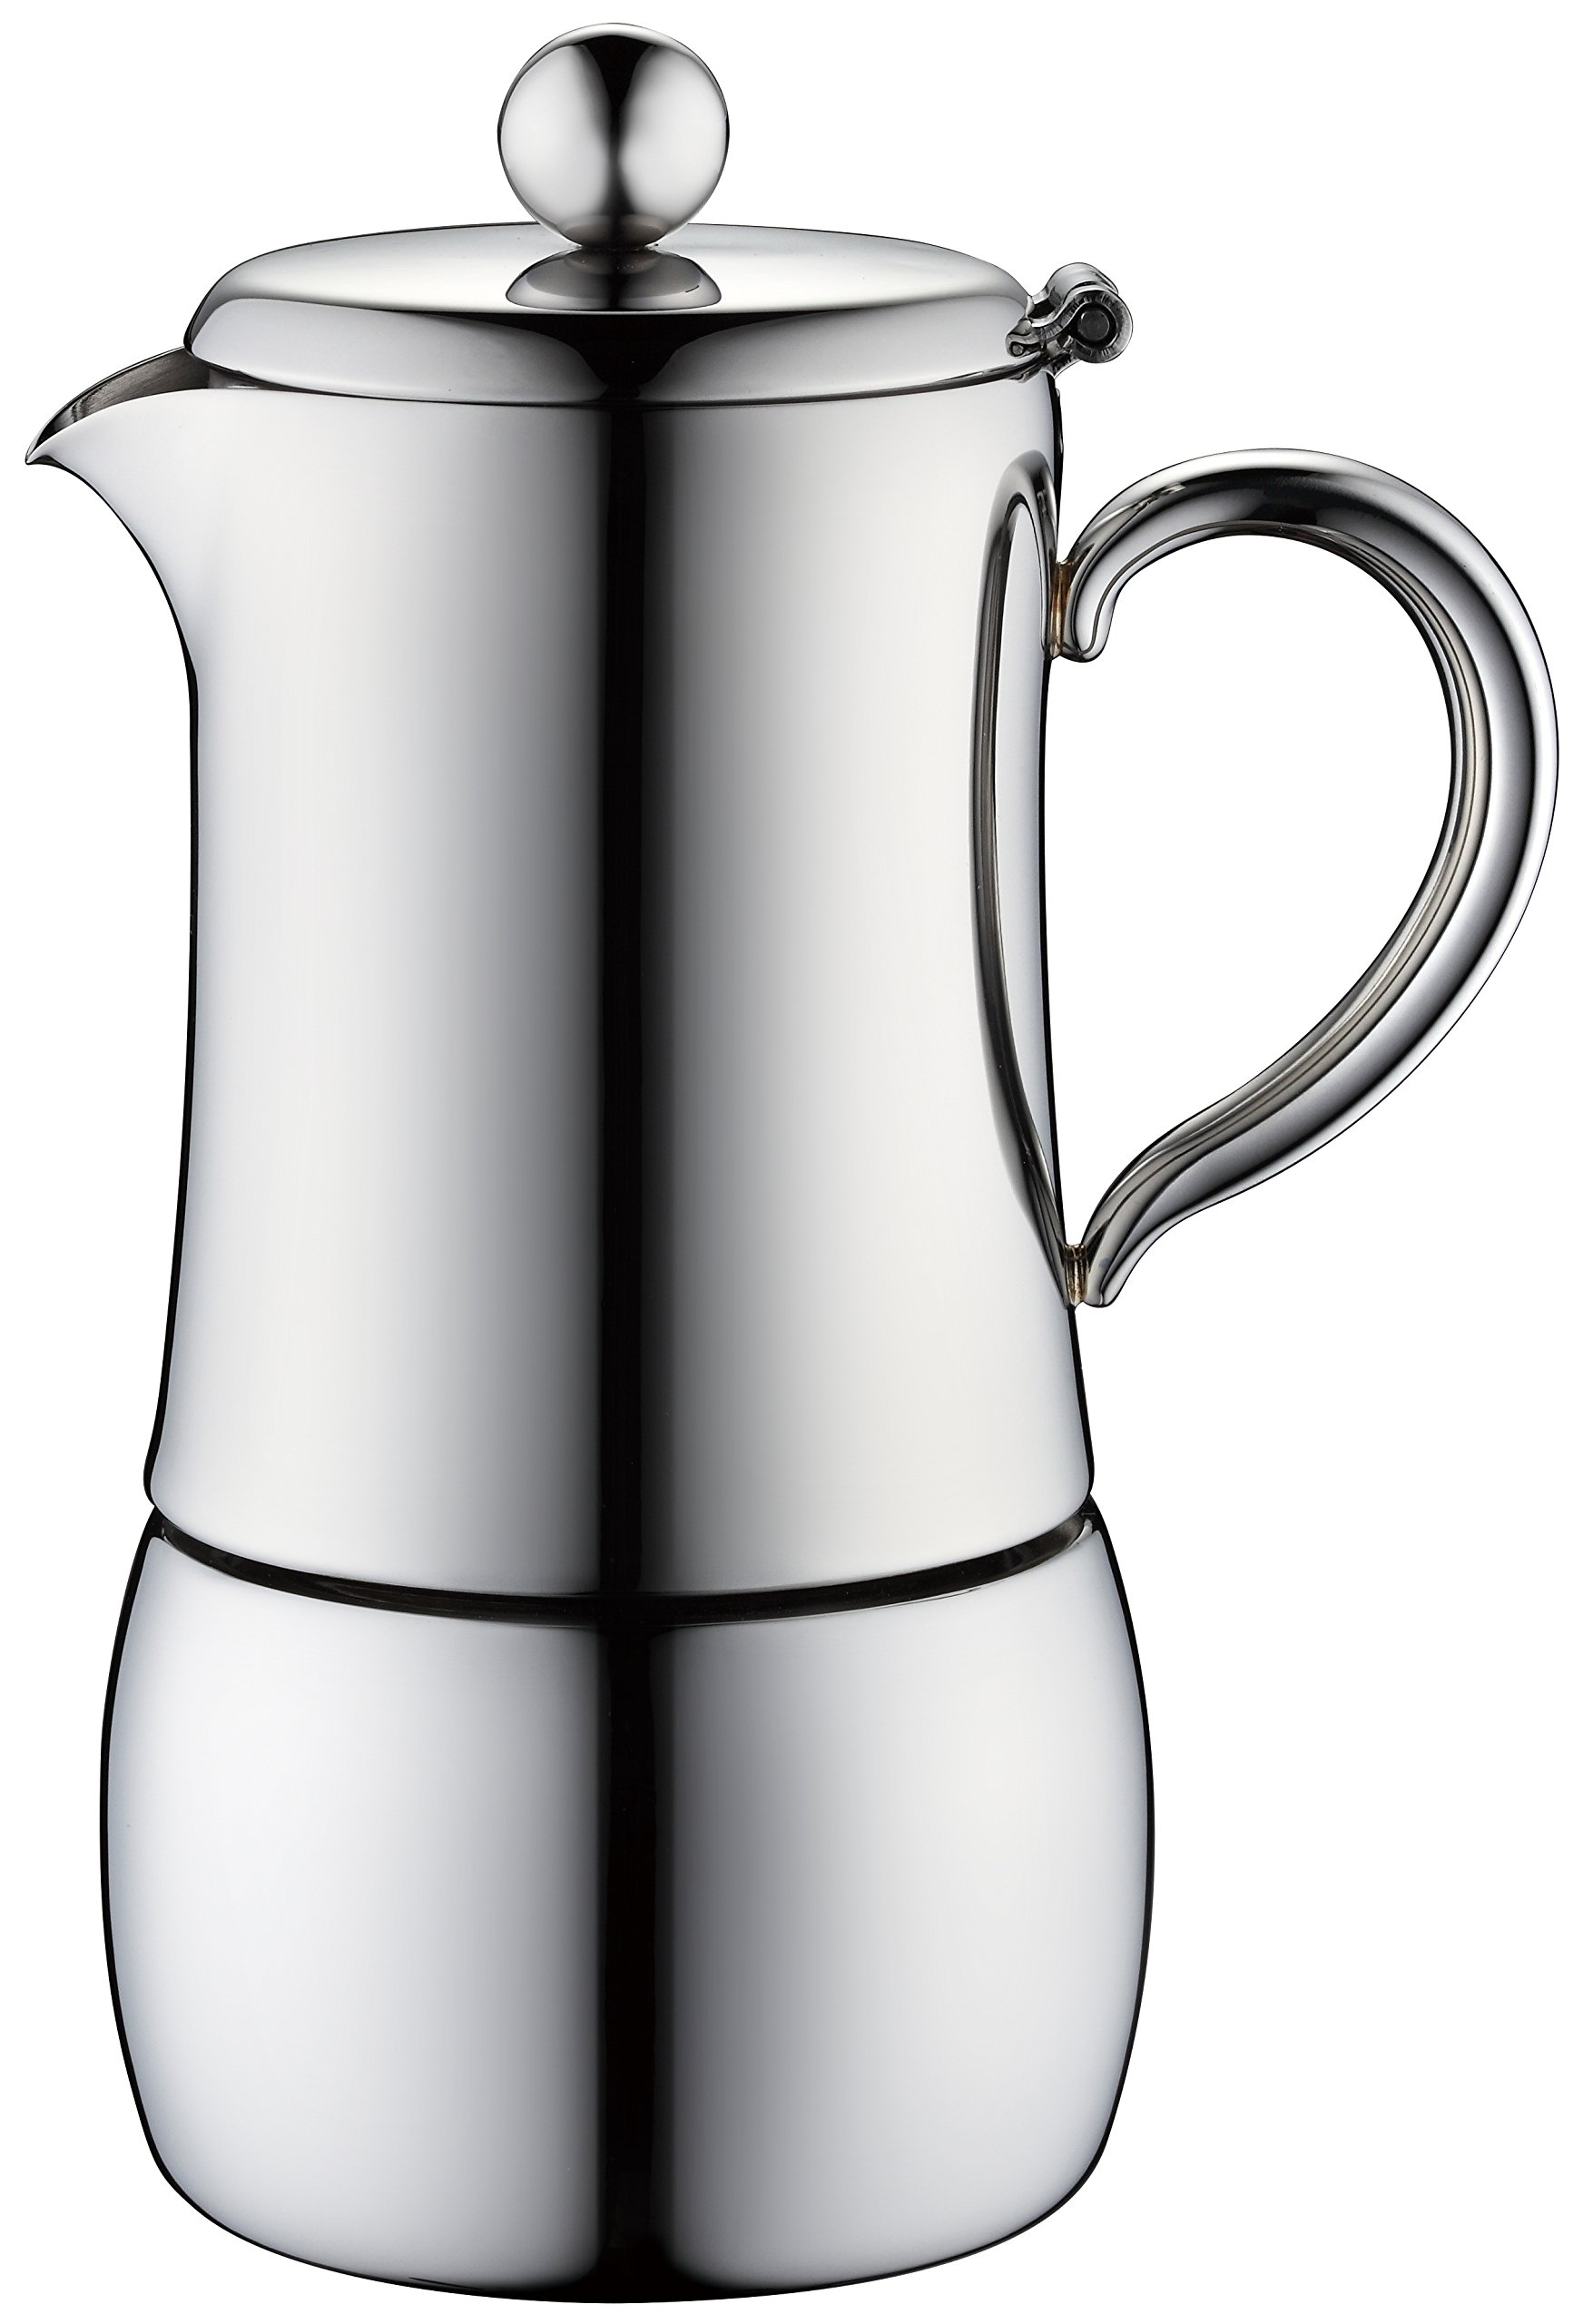 Minos Moka Pot 6-Cup Espresso Maker - Stainless Steel And Heatproof Handle - Sleek, Curvy, Elegant & Stylish Design- Suitable for Gas, Electric And Ceramic Stovetops